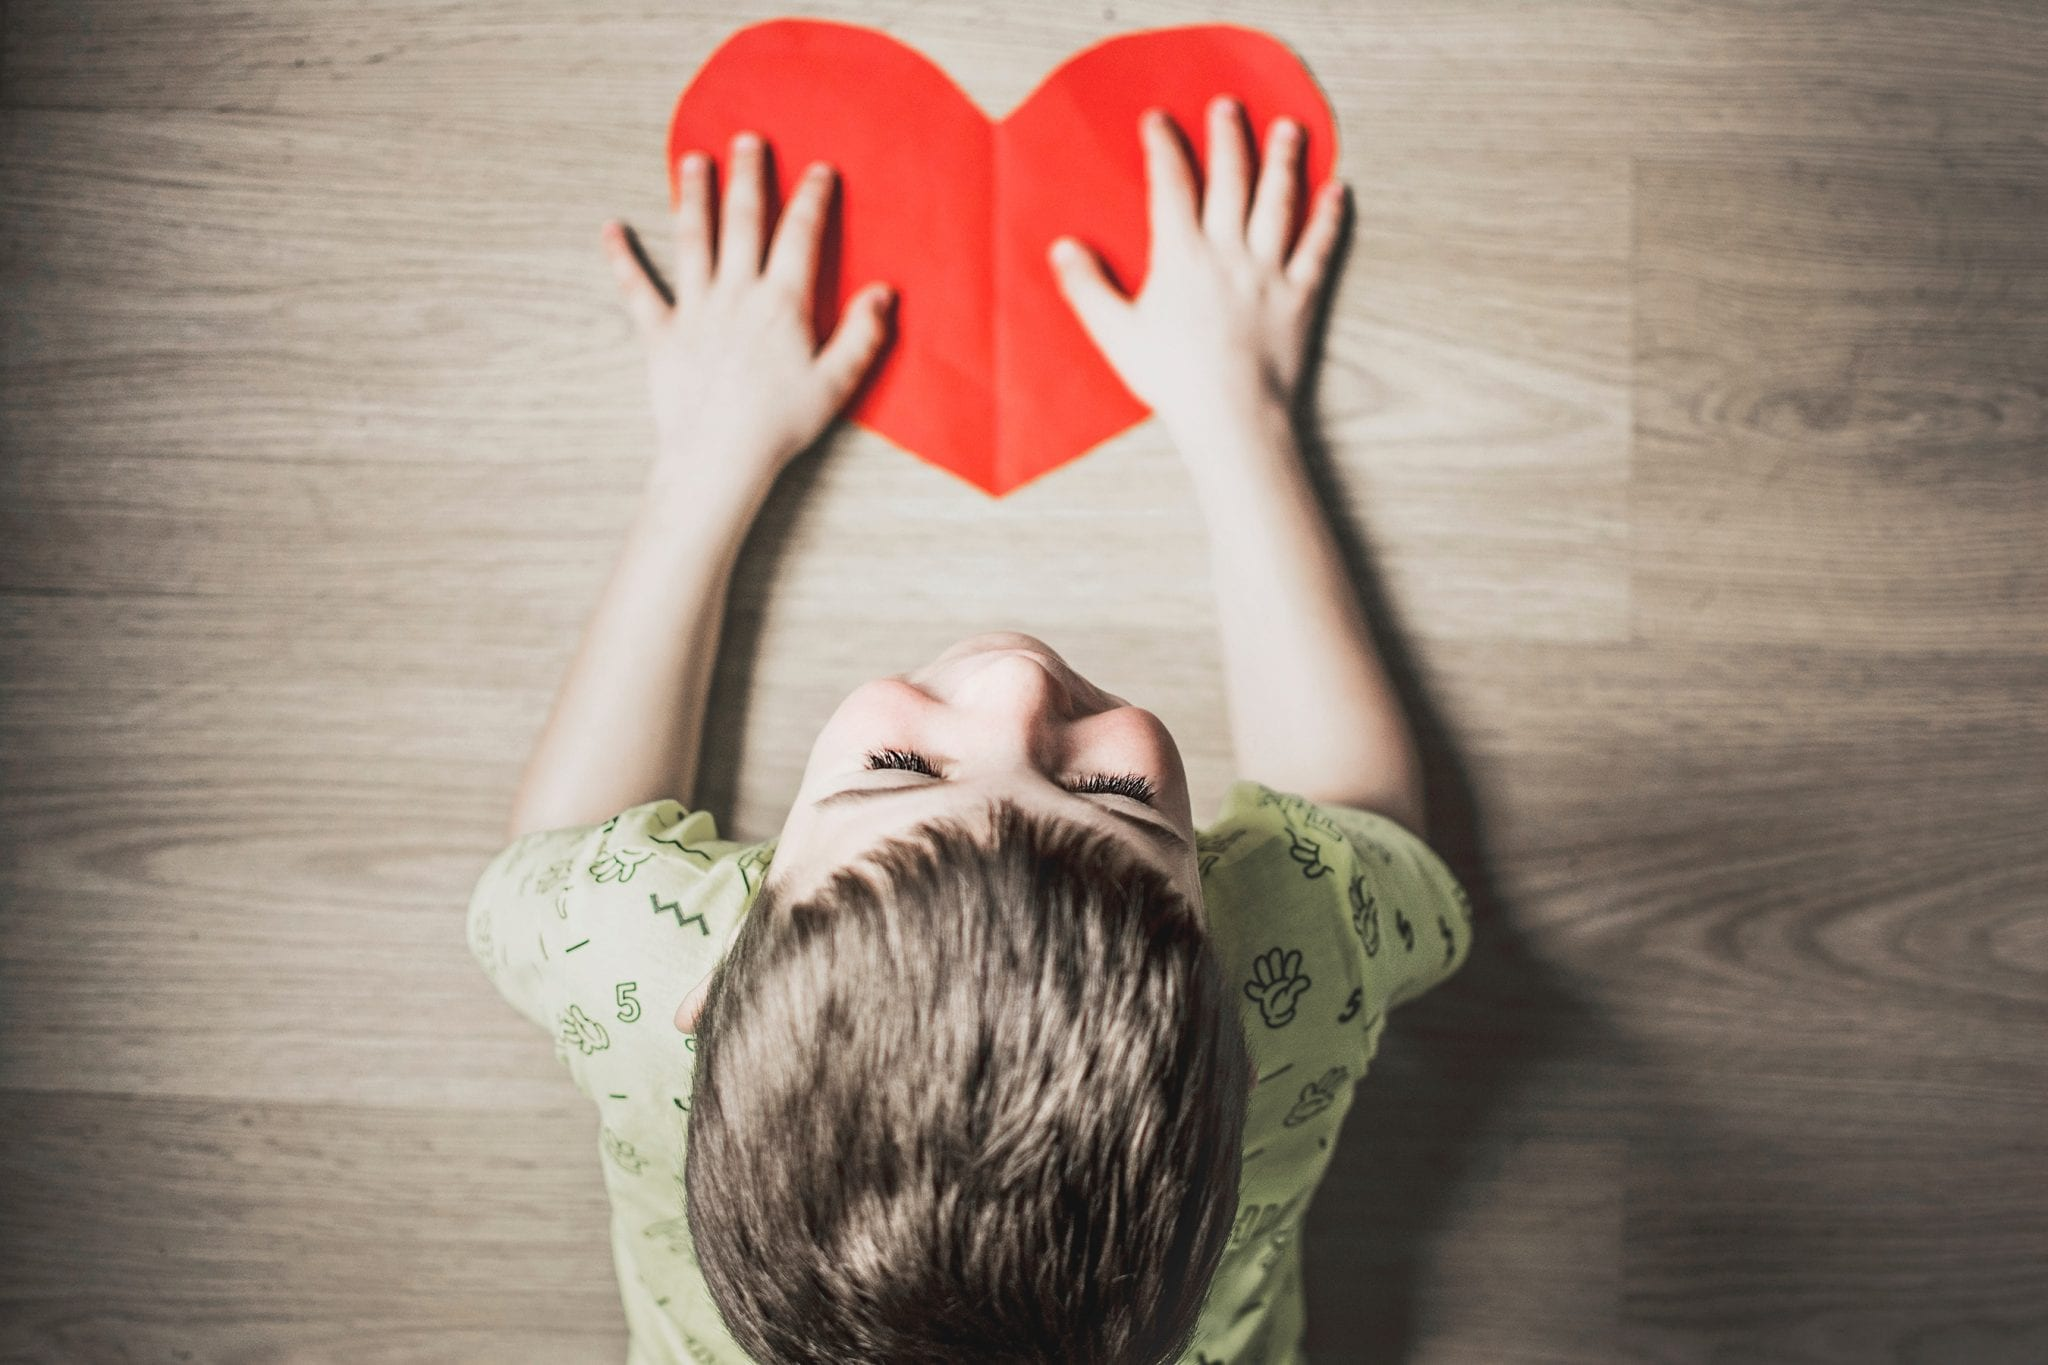 Young smiling child with hands on a paper heart